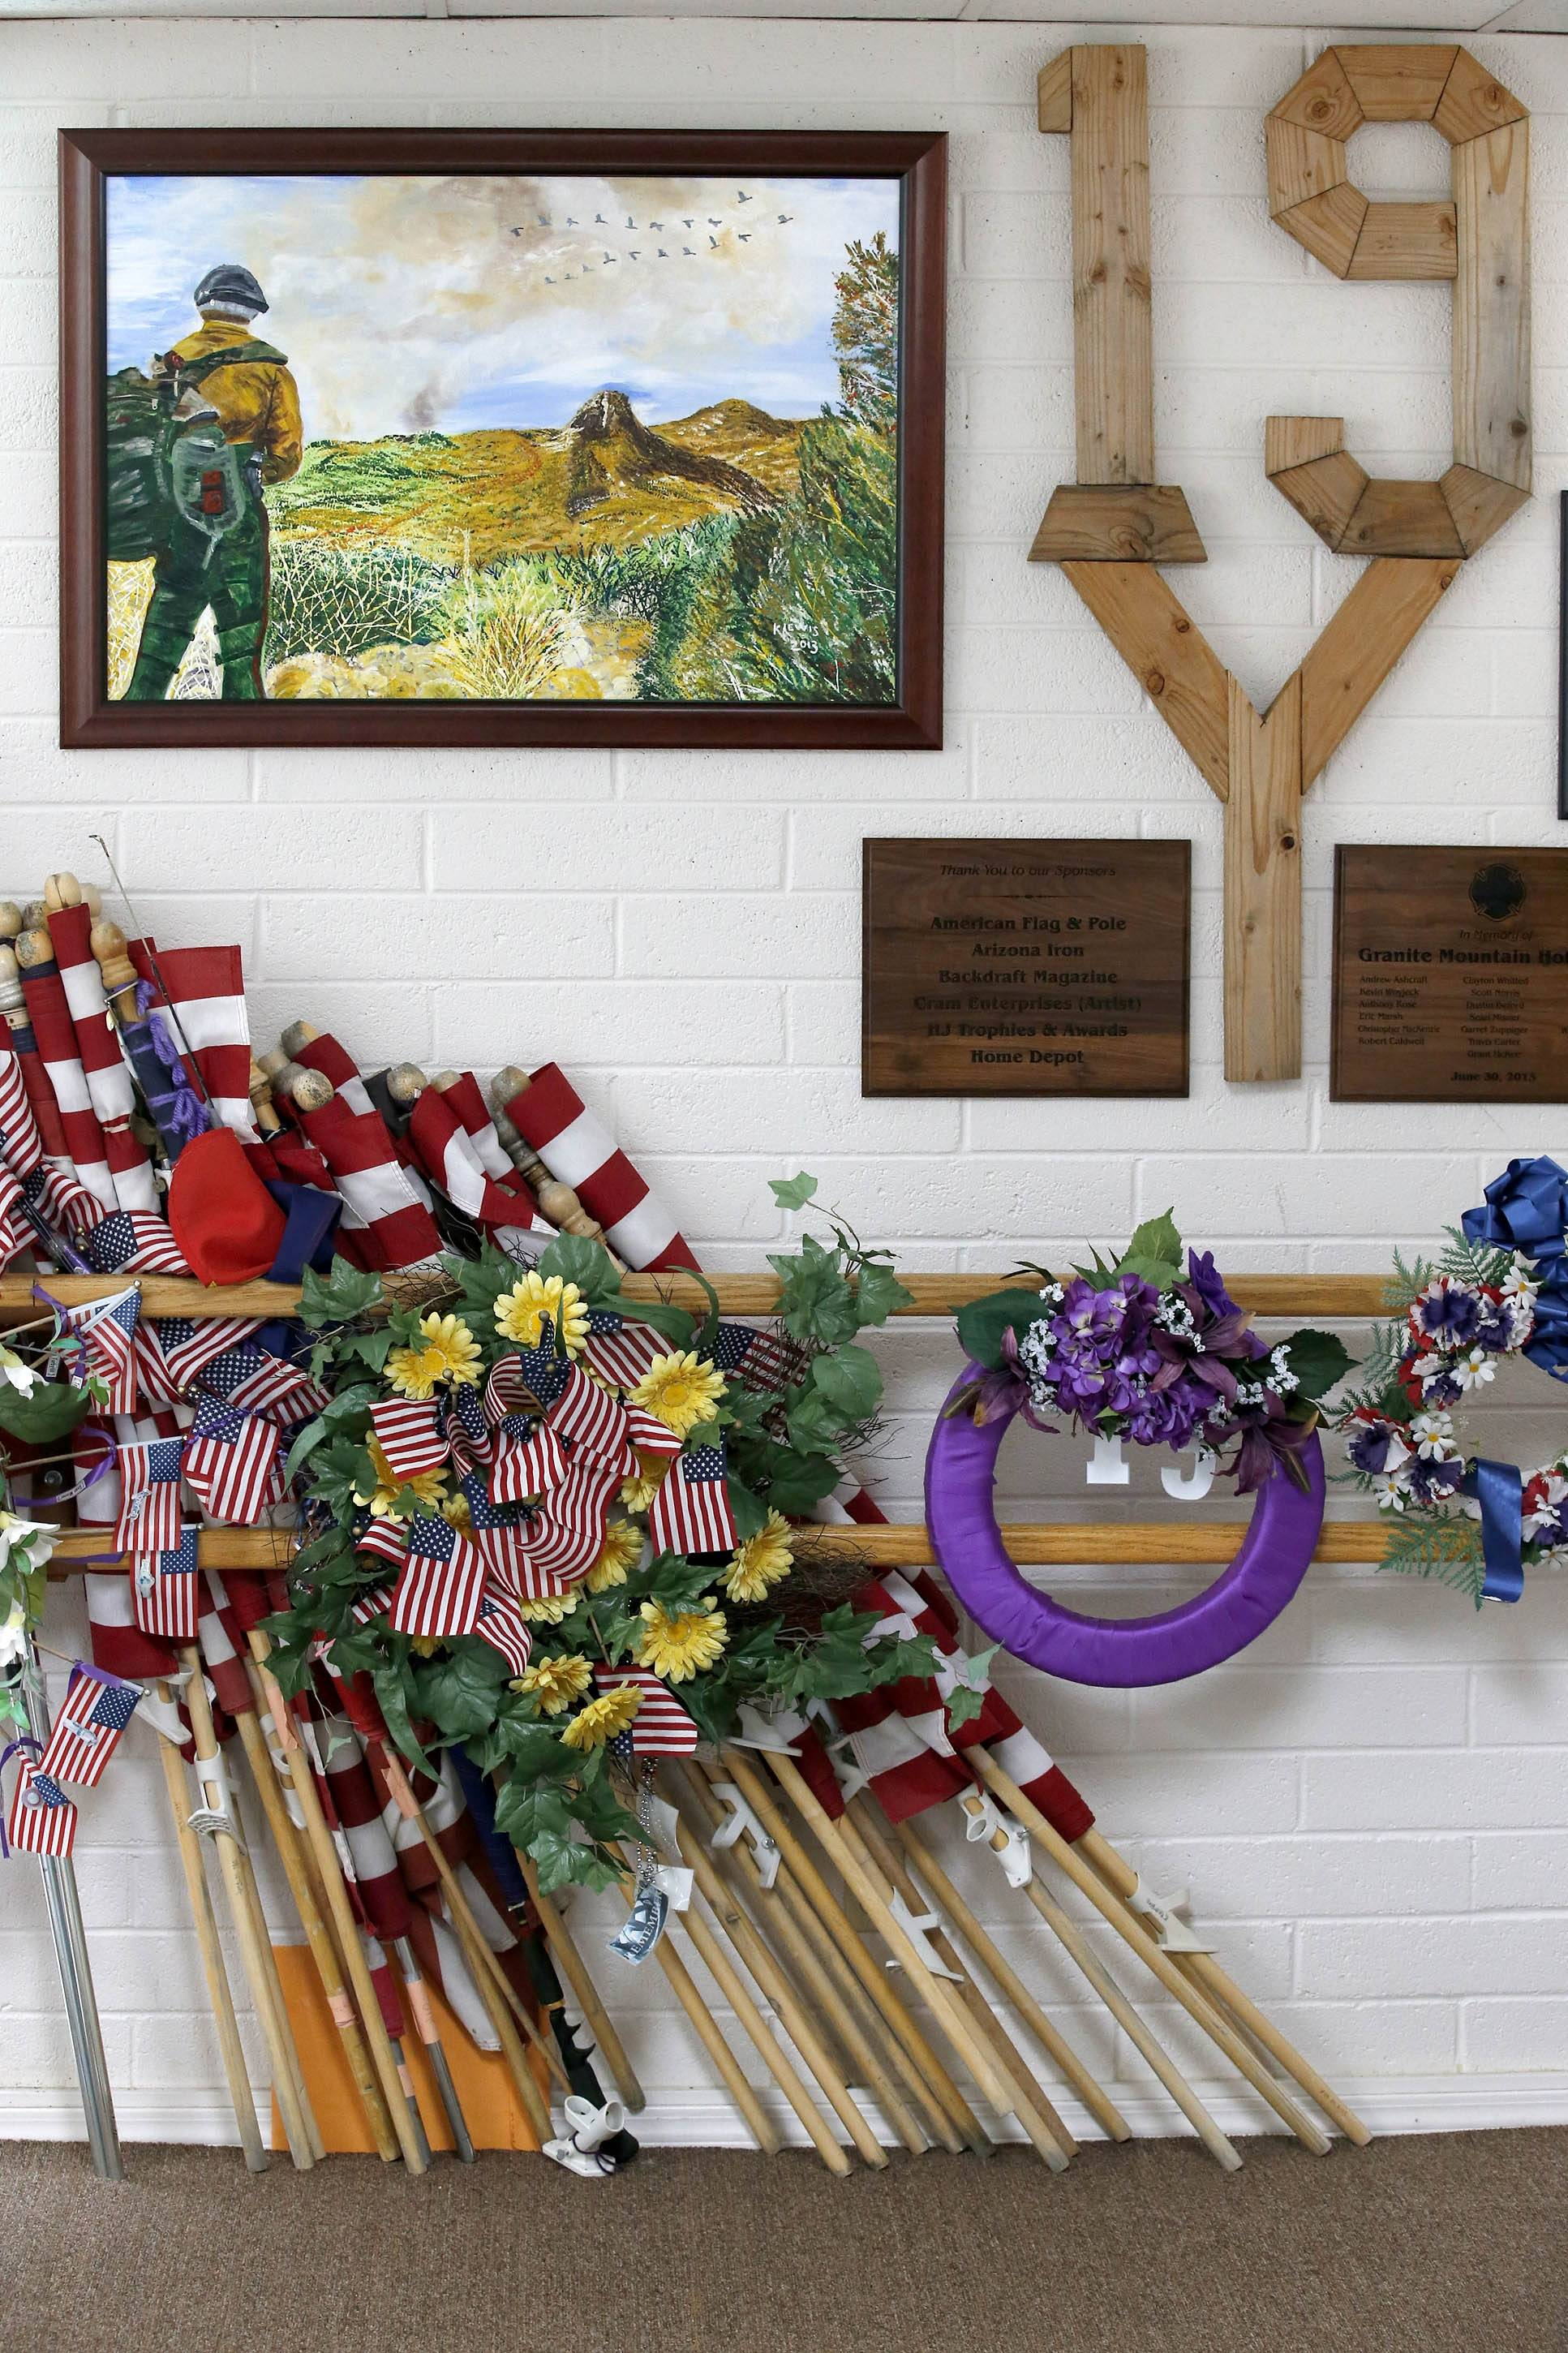 Just some of the thousands of artifacts saved for the Tribute Fence Preservation Project honoring the 19 Granite Mountain Hotshots who were killed nearly a year ago fighting an Arizona wildfire on Tuesday, June 24, 2014, in Prescott, Ariz.